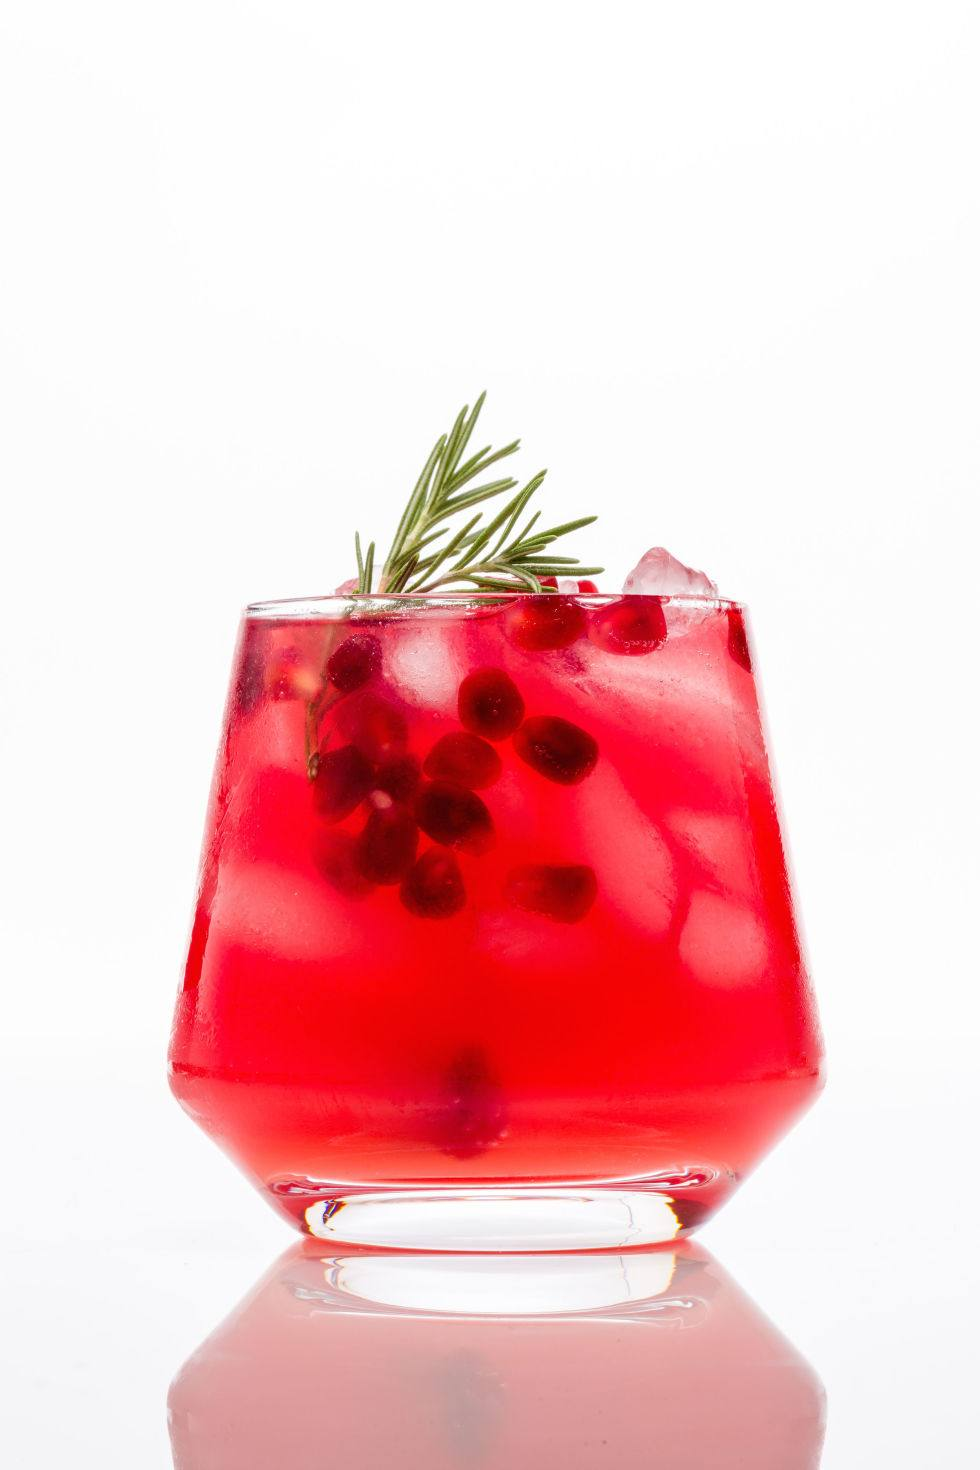 Weekend Recipe: Pomegranate Cocktails